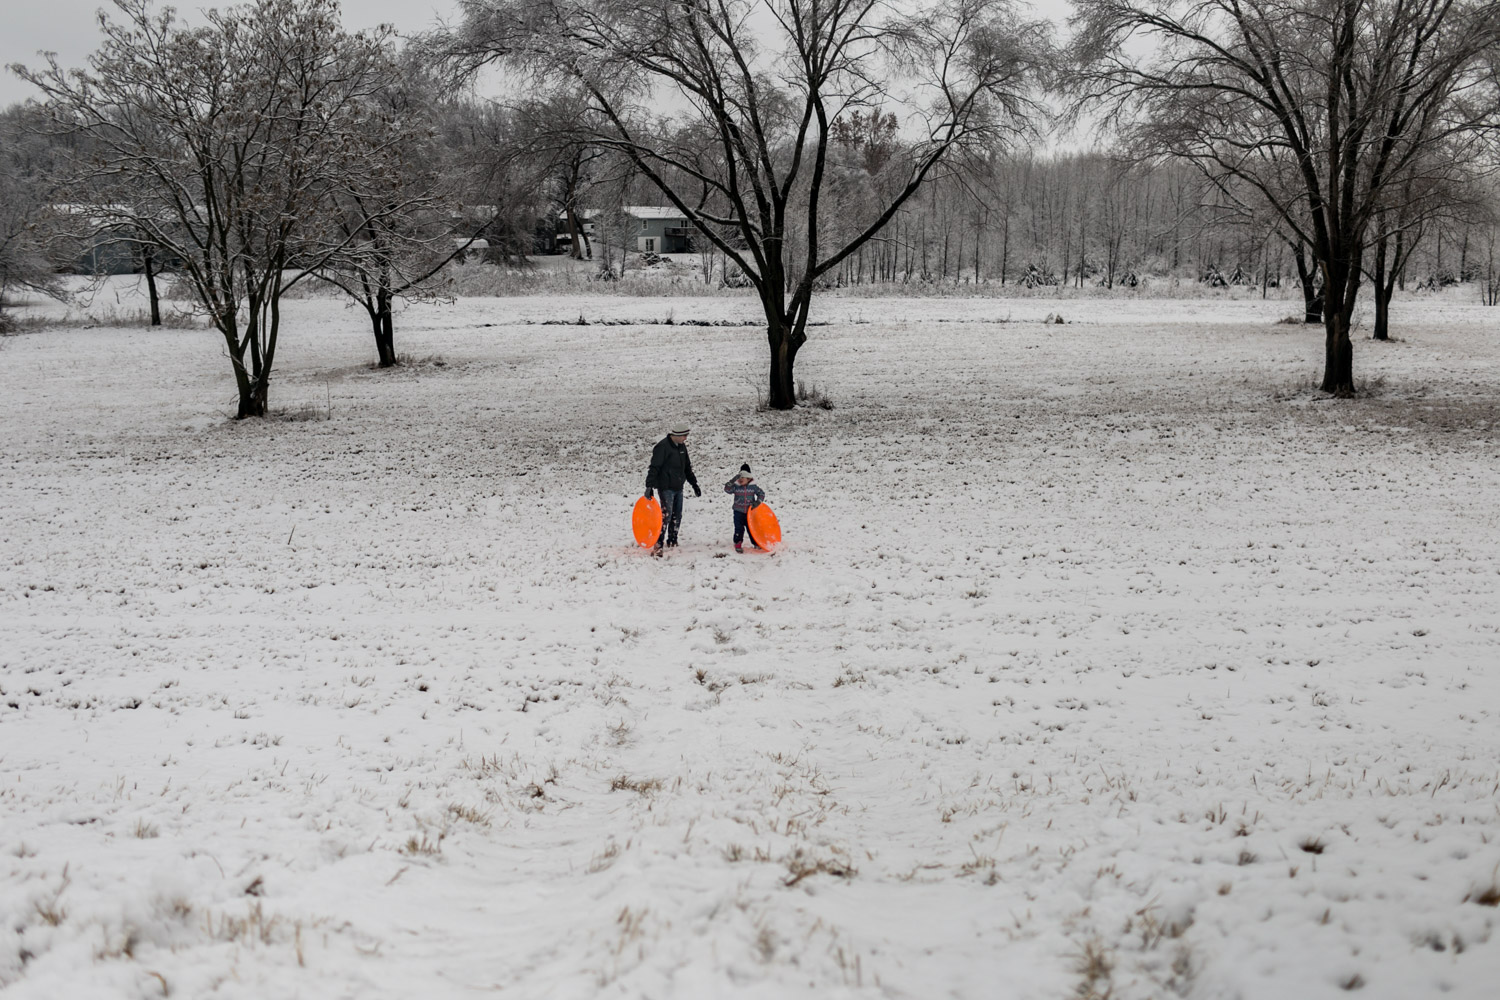 Coming back up the hill after sledding down. Captured by best Lifestyle Family Photographer, Renee McDaniel in Manhattan, Kansas.